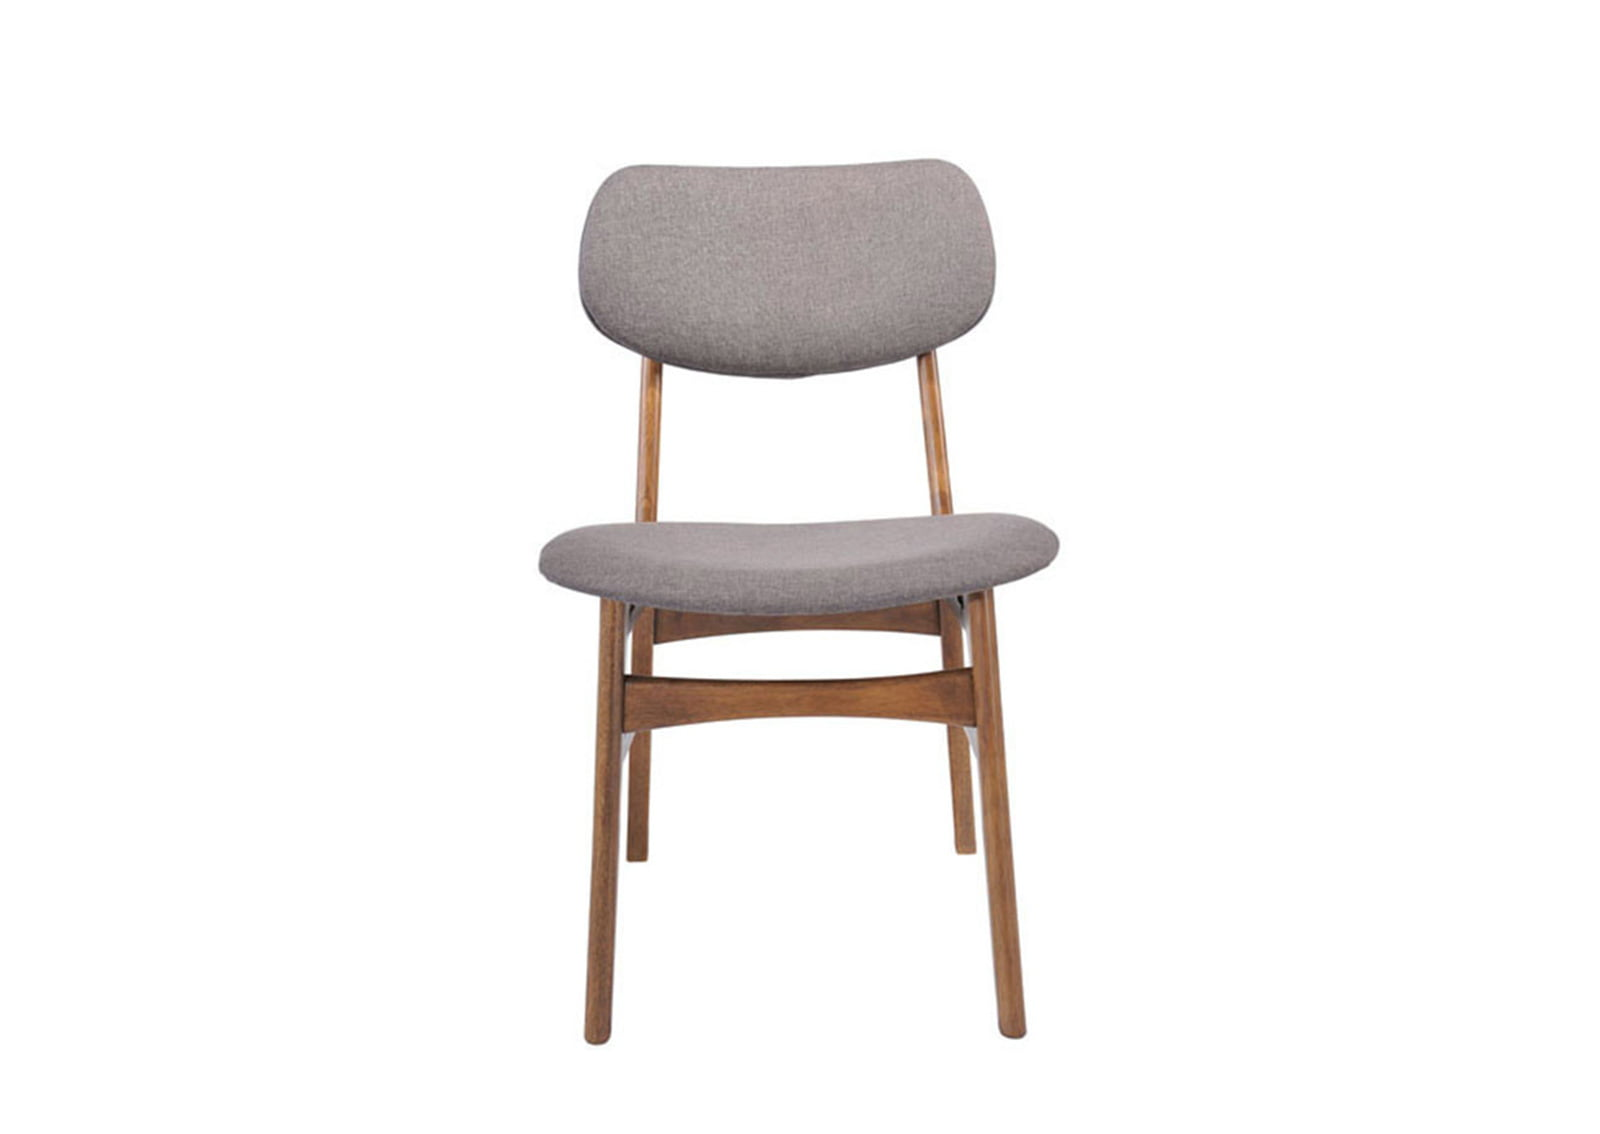 Midtown dining chair flint gray furnishplus Gray dining chairs